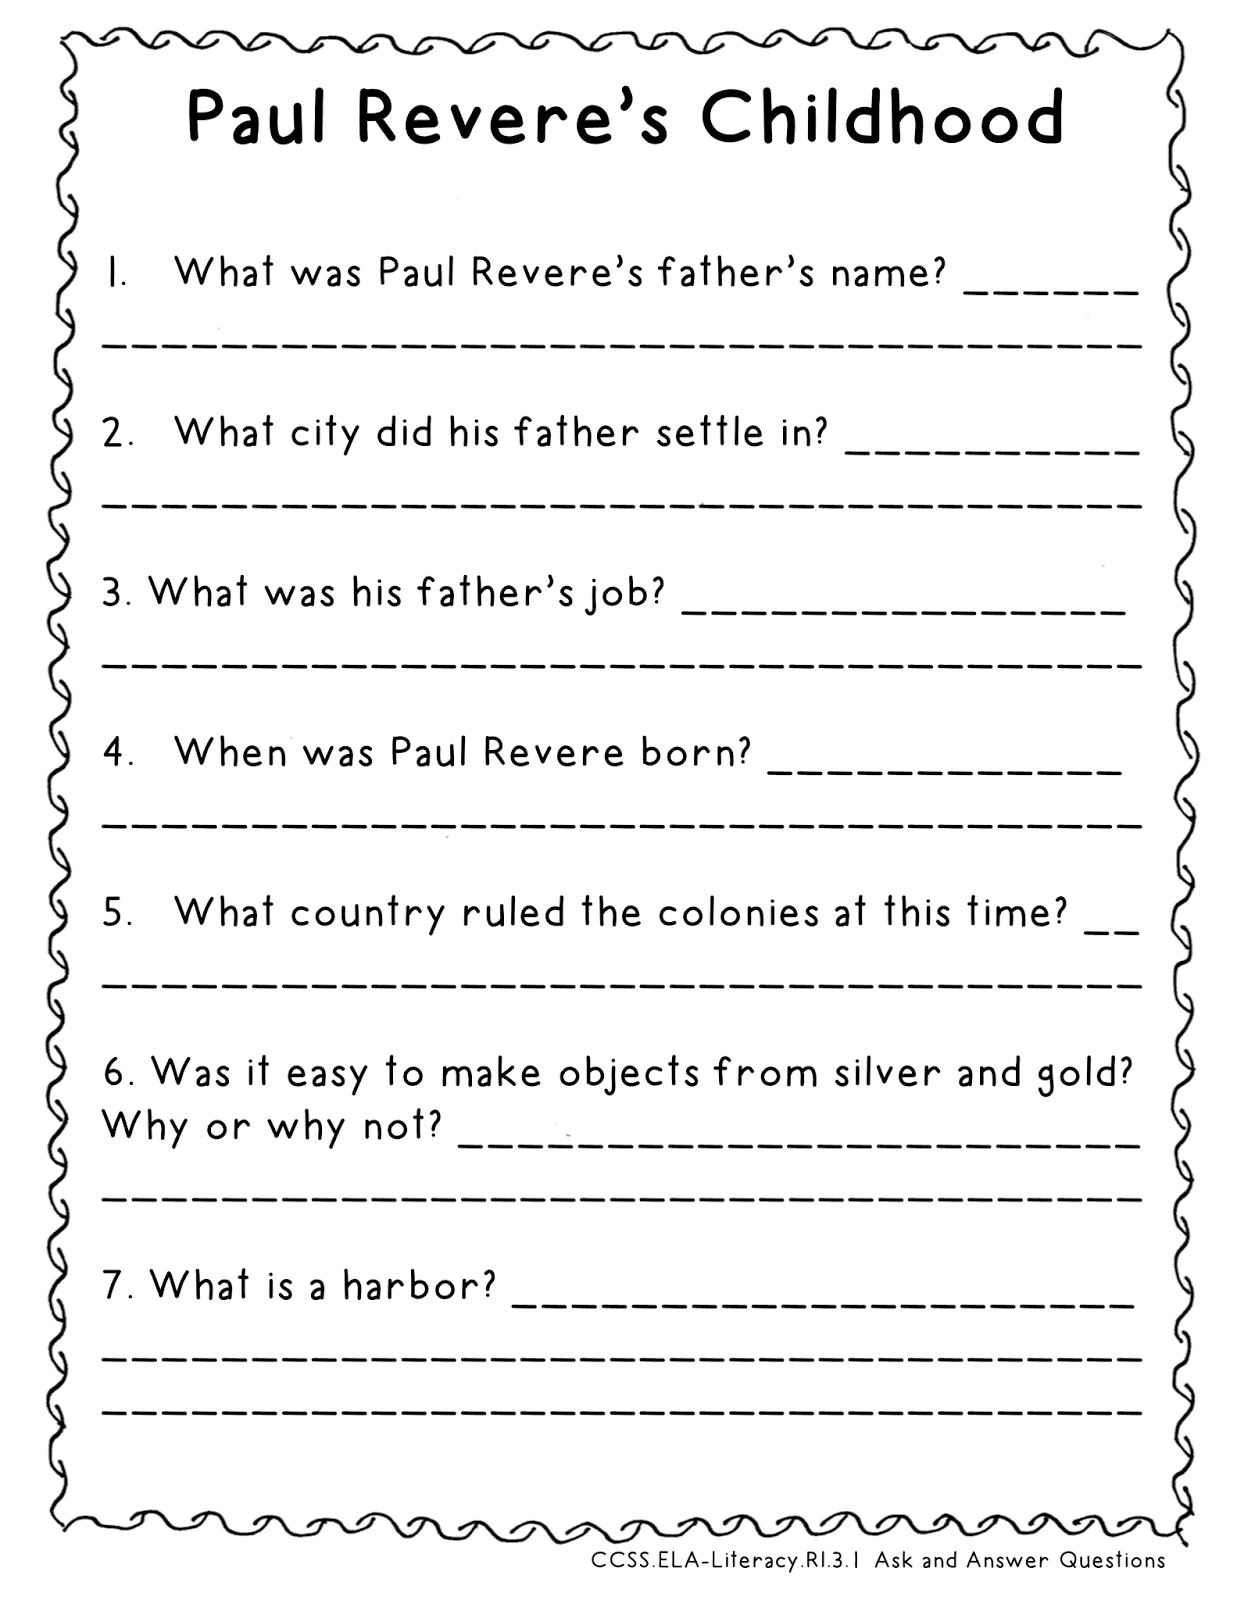 Worksheets Paul Revere Worksheets paul revere worksheet free worksheets library download and print photos pigmu